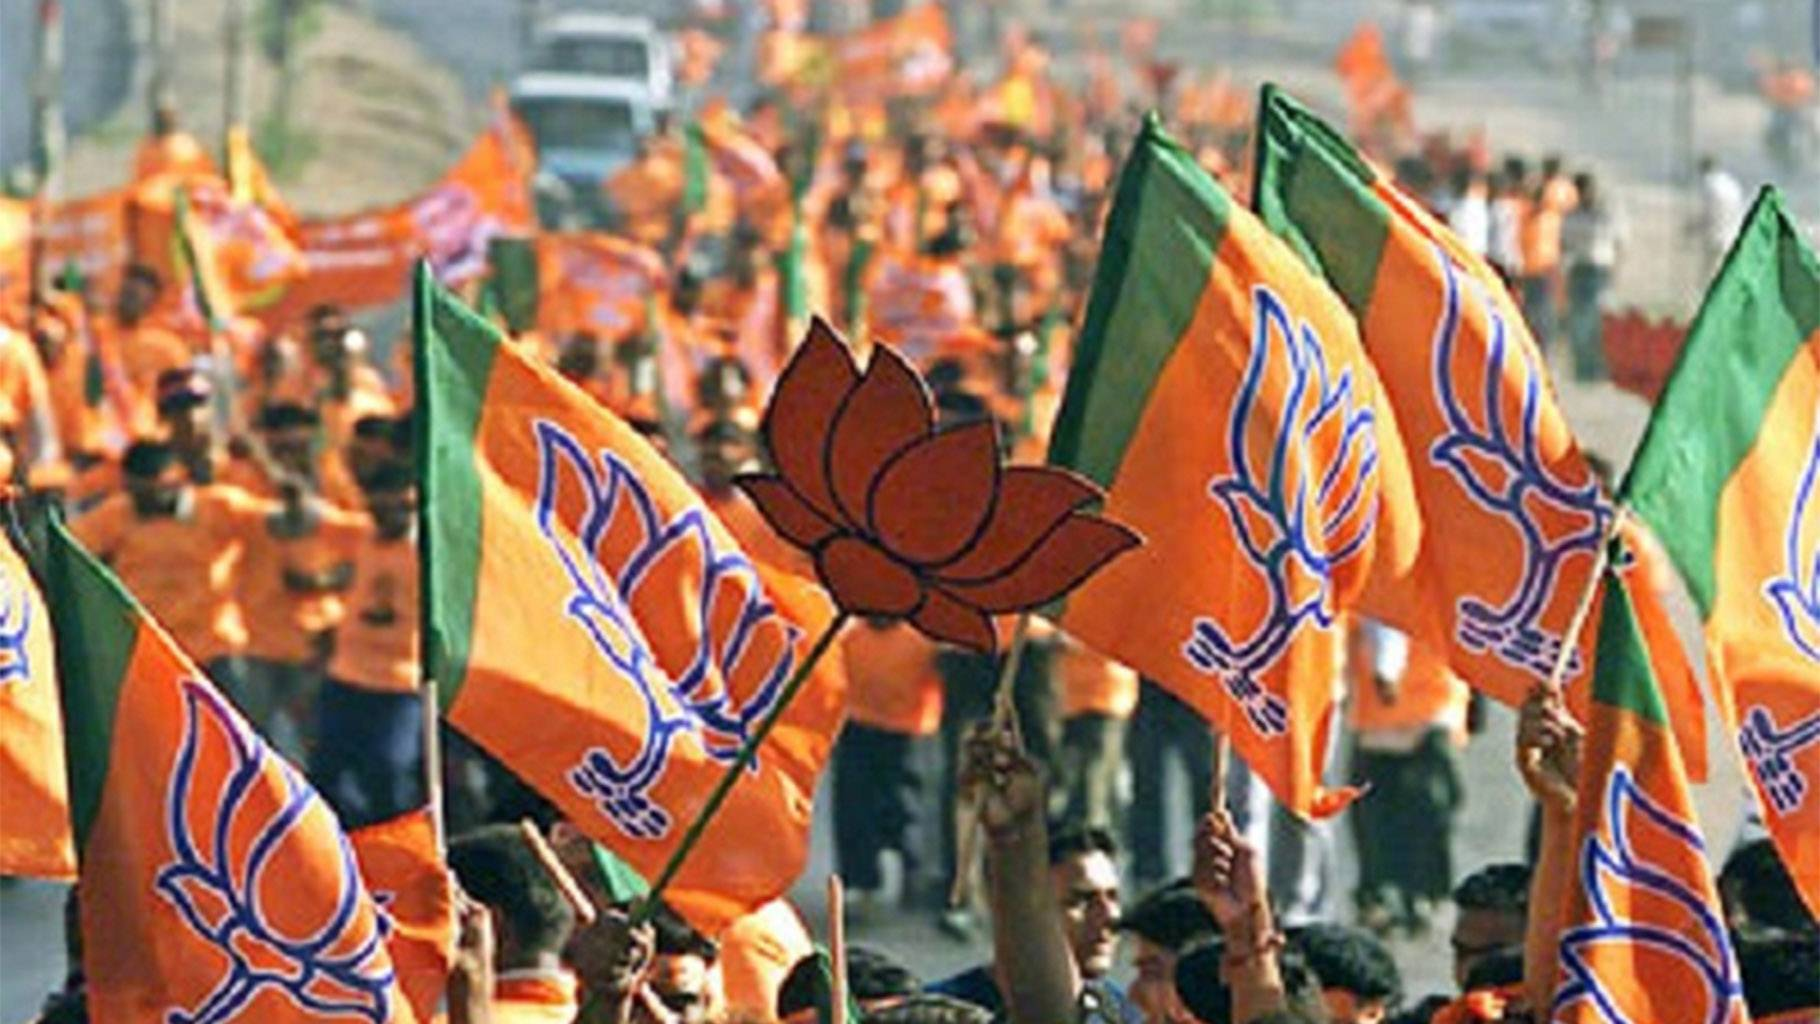 J&K: Six more setbacks to BJP in the Valley, resignations of leaders in Baramulla and Ganderbal after terrorist attacks